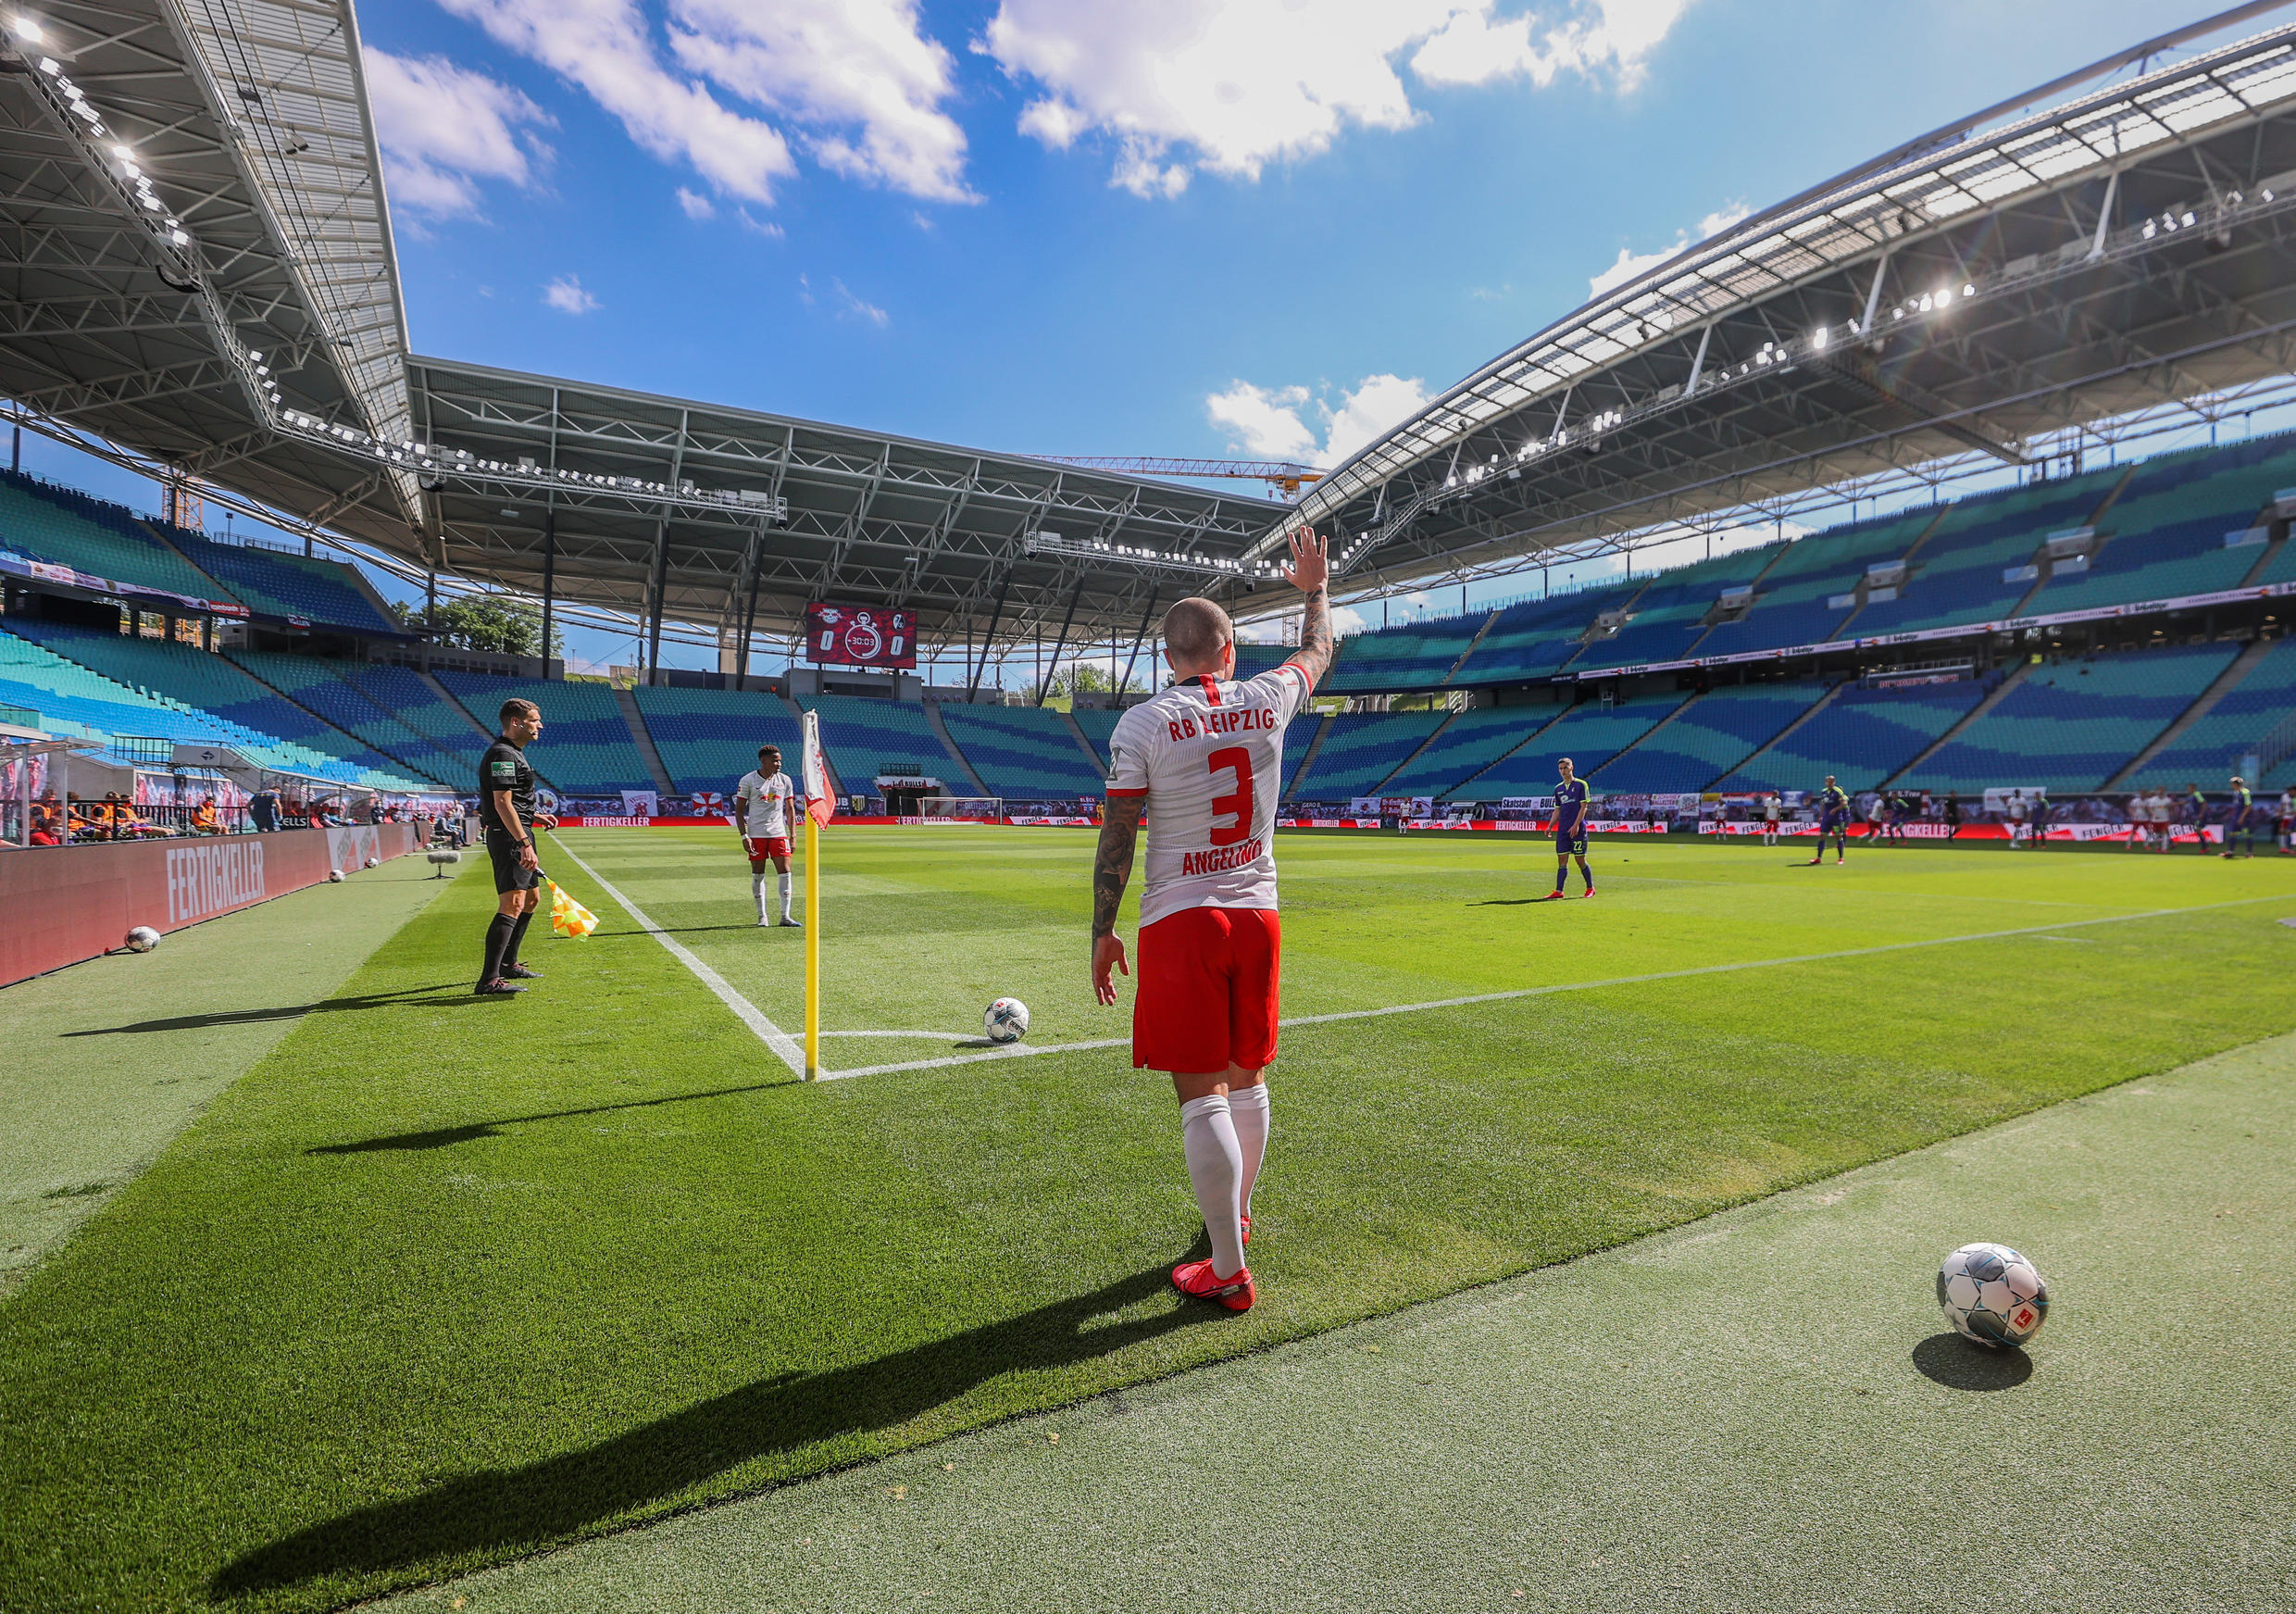 RB Leipzig's Angelino prepares to take a corner, as play resumes behind closed doors following the lifting of the Covid-19 lockdown, RB Leipzig v SC Freiburg, Leipzig, Germany, 16 May 2020.